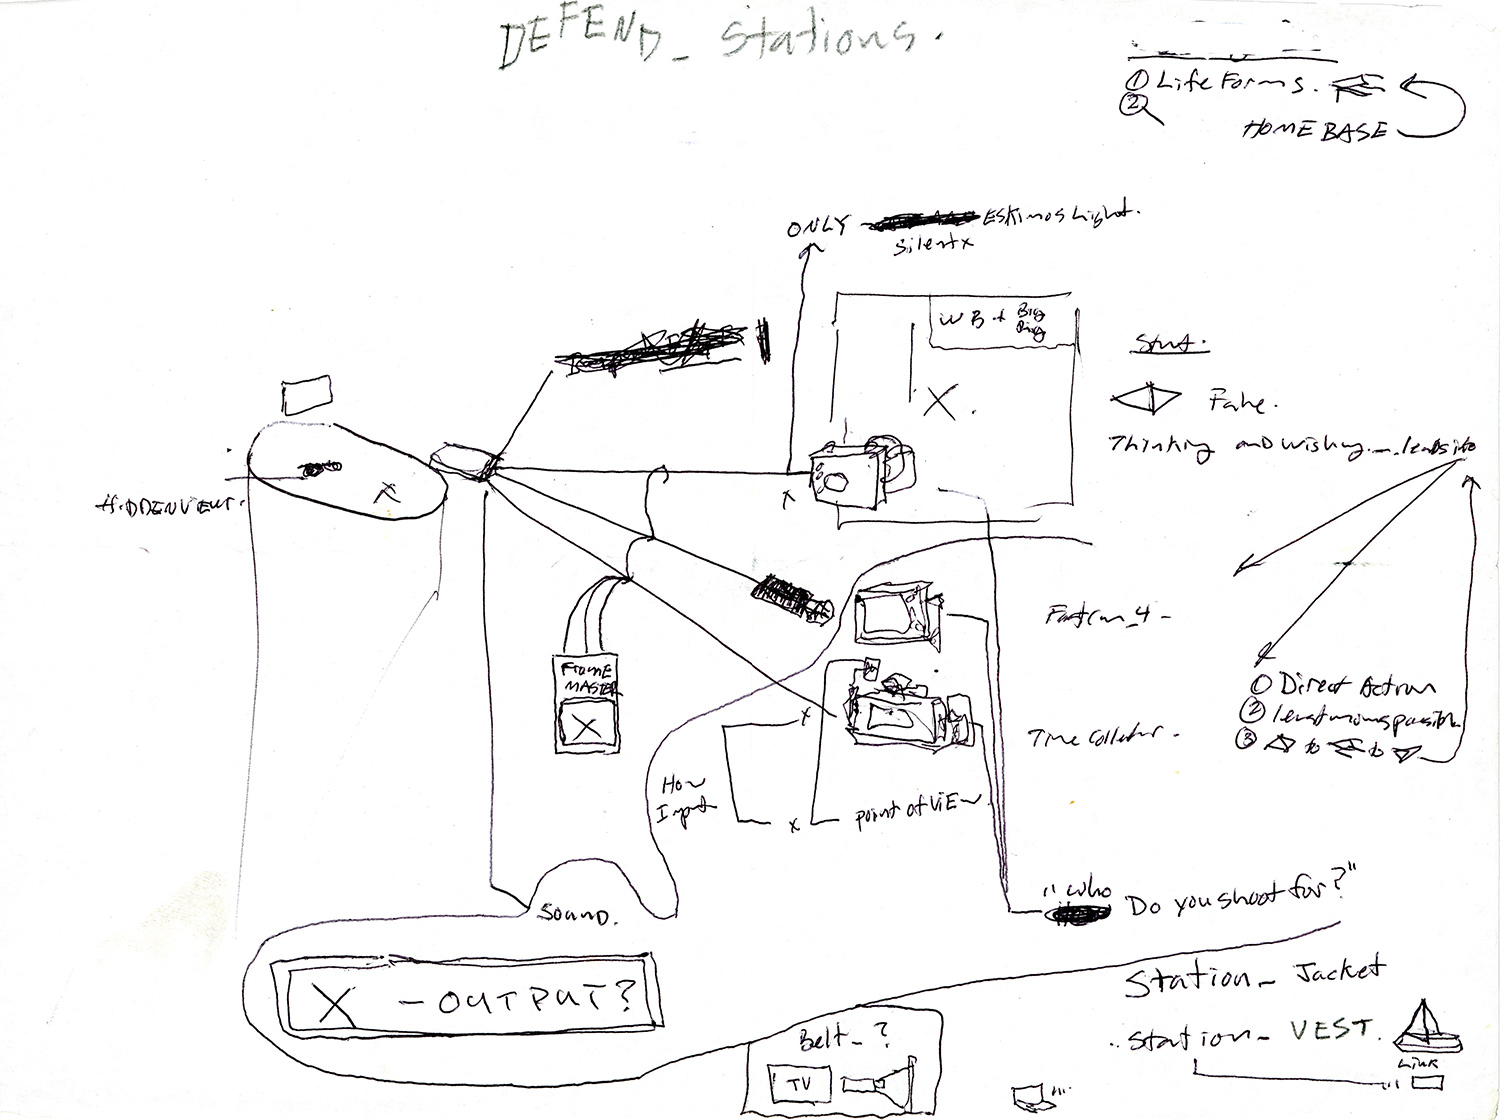 """DEFEND_Stations_Schematic . Ink and graphite on paper. 8.5"""" x 11"""". 2014."""